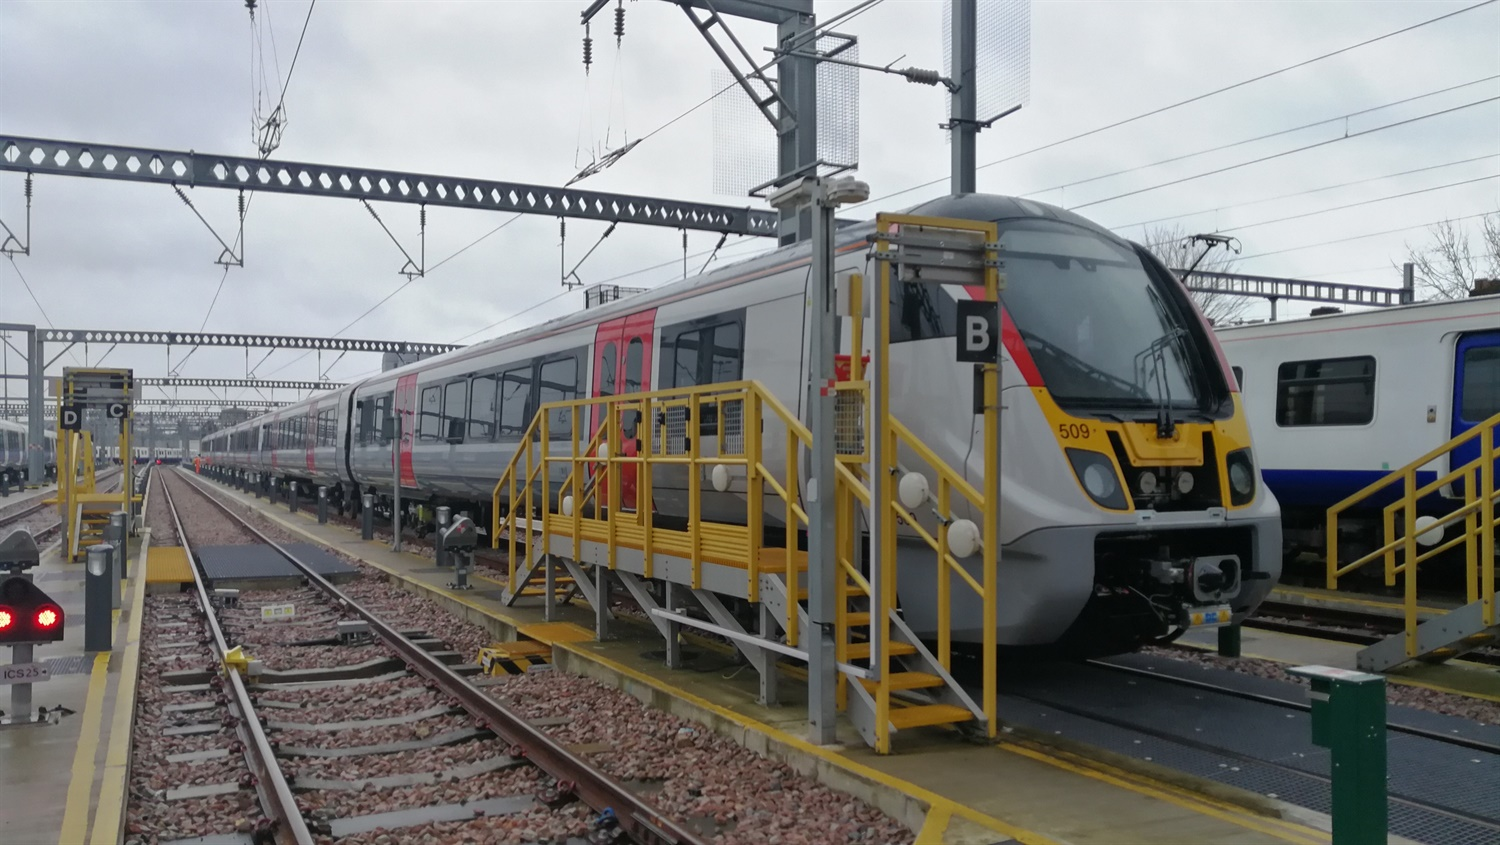 Greater Anglia's new commuter trains have arrived in Essex